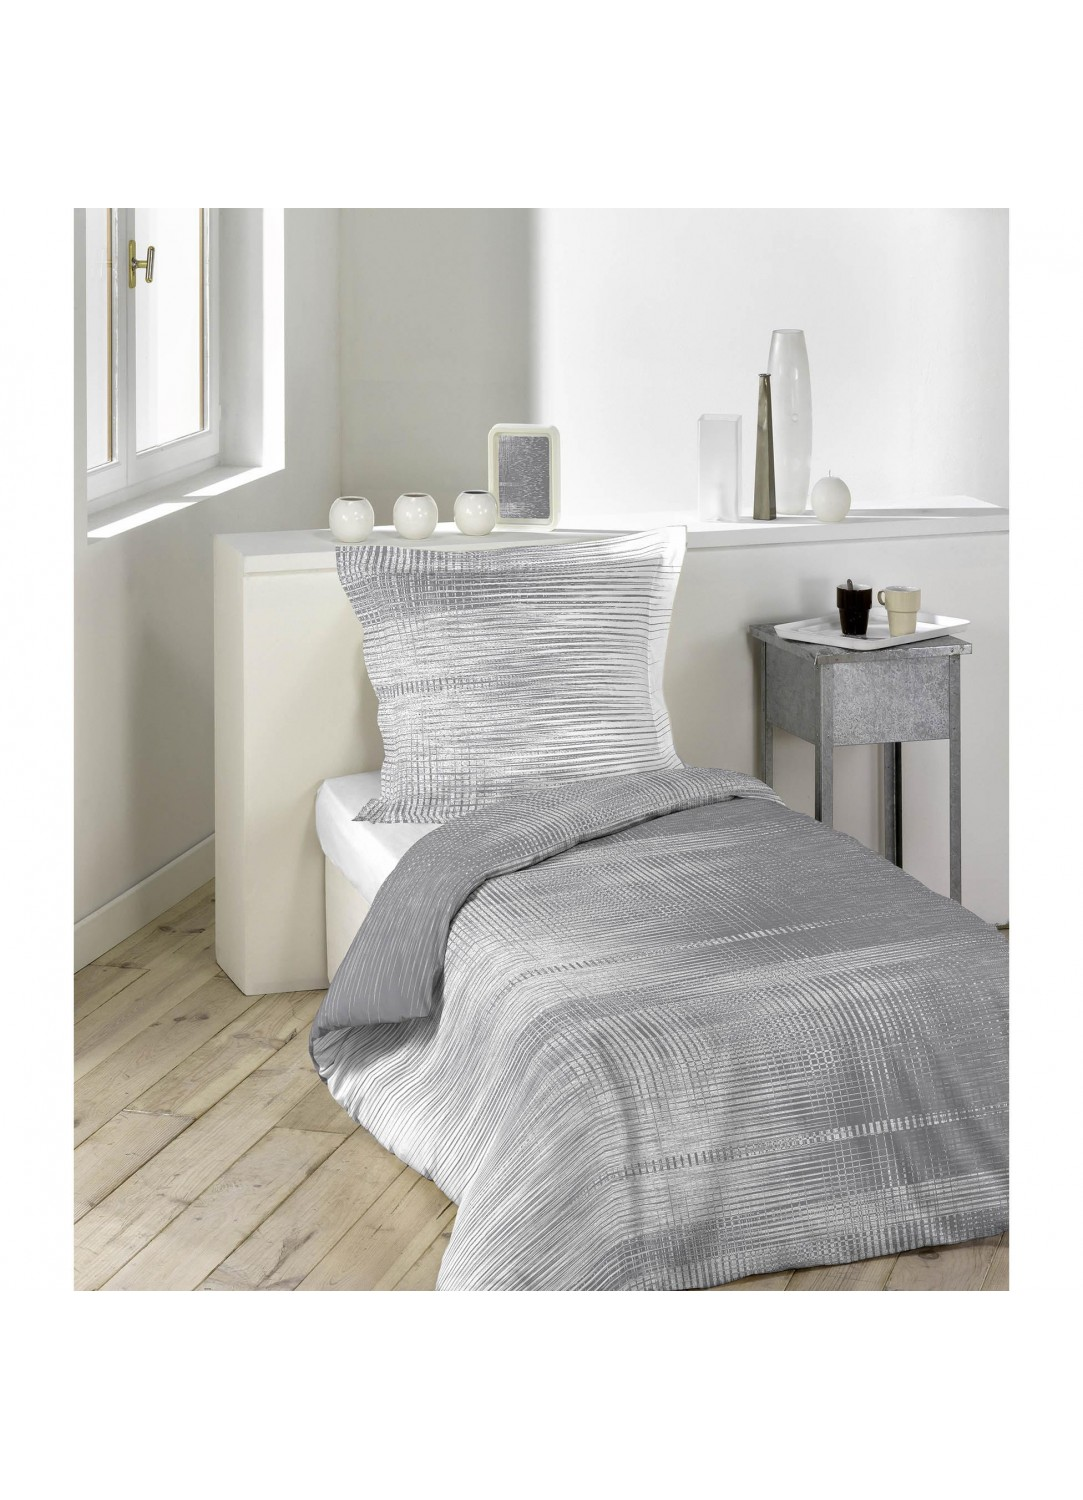 parure de lit imprim e grimo gris blanc homemaison vente en ligne parures de lit. Black Bedroom Furniture Sets. Home Design Ideas